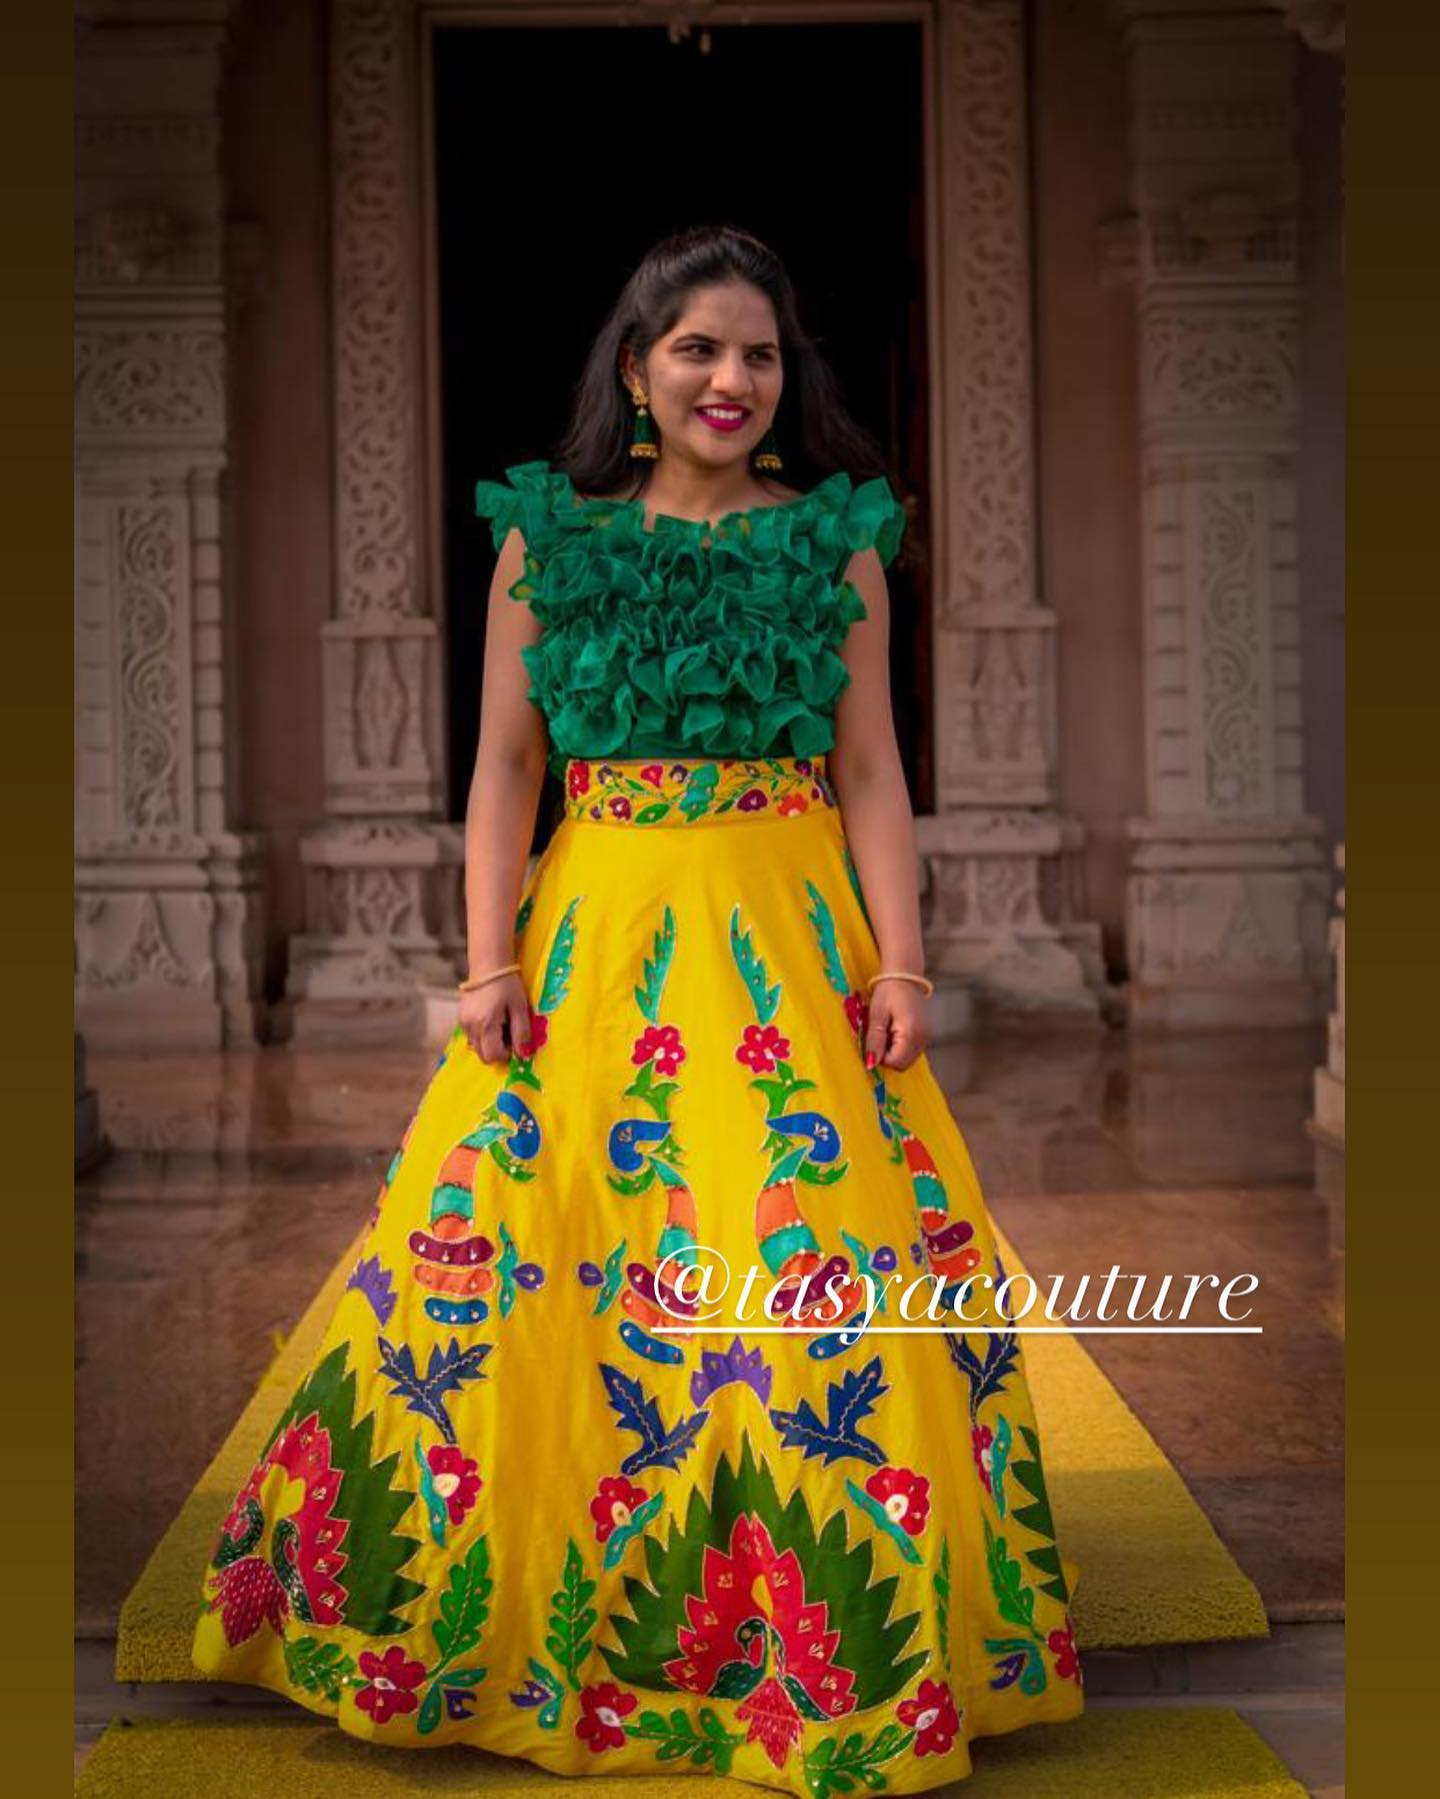 Stunning yellow color skirt and green ruffle crop top. Skirt with hand embroidery work.  2021-02-22